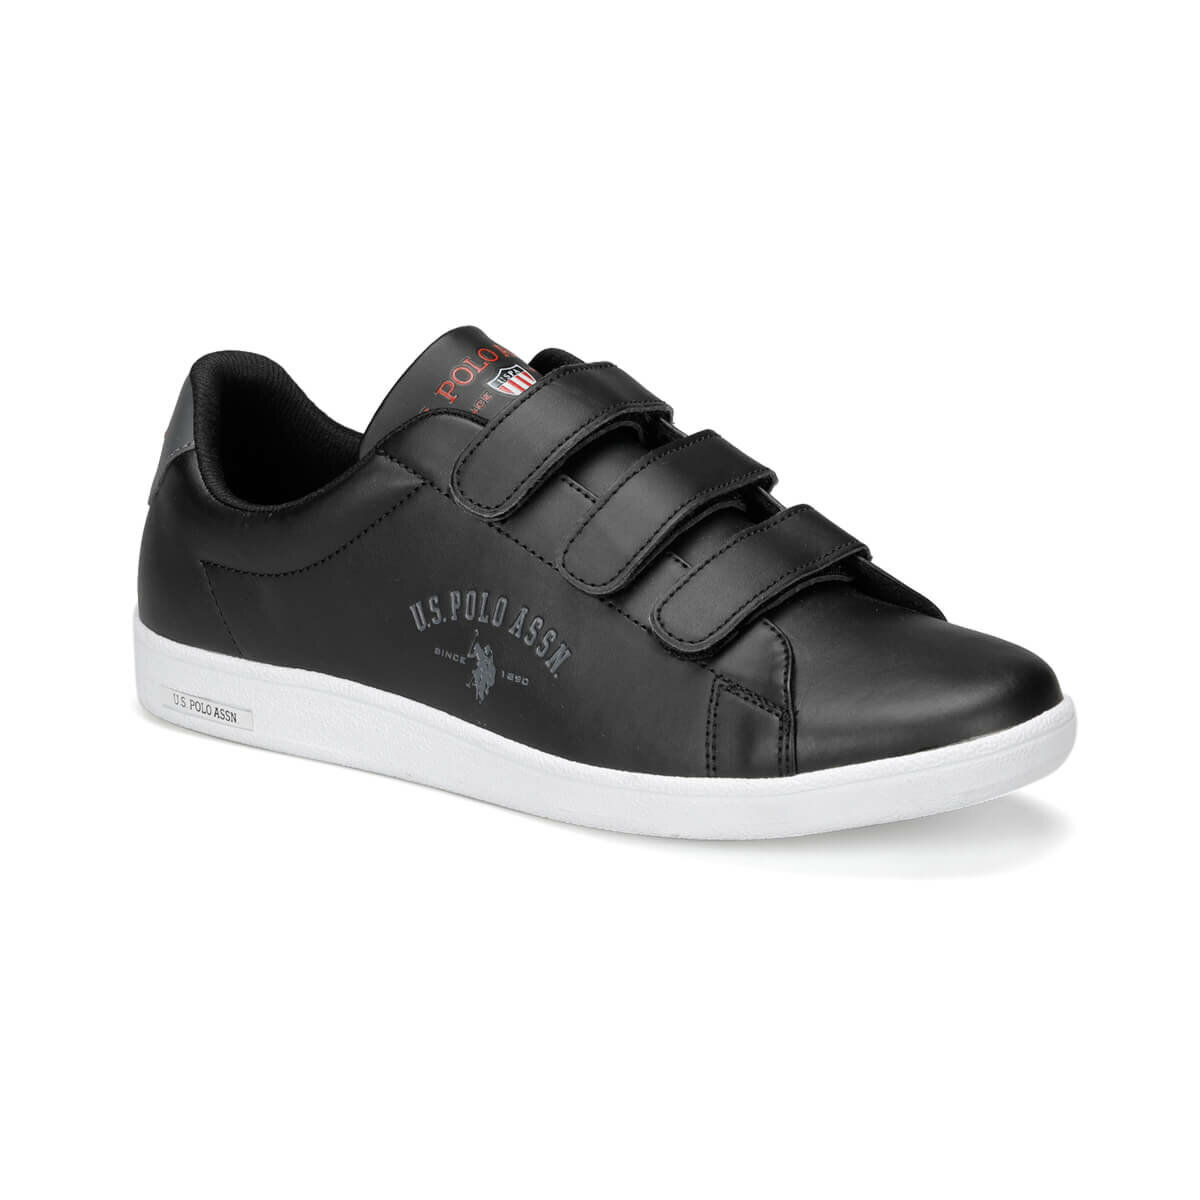 FLO SINGER 9PR Black Men 'S Sneaker Shoes U.S. POLO ASSN.